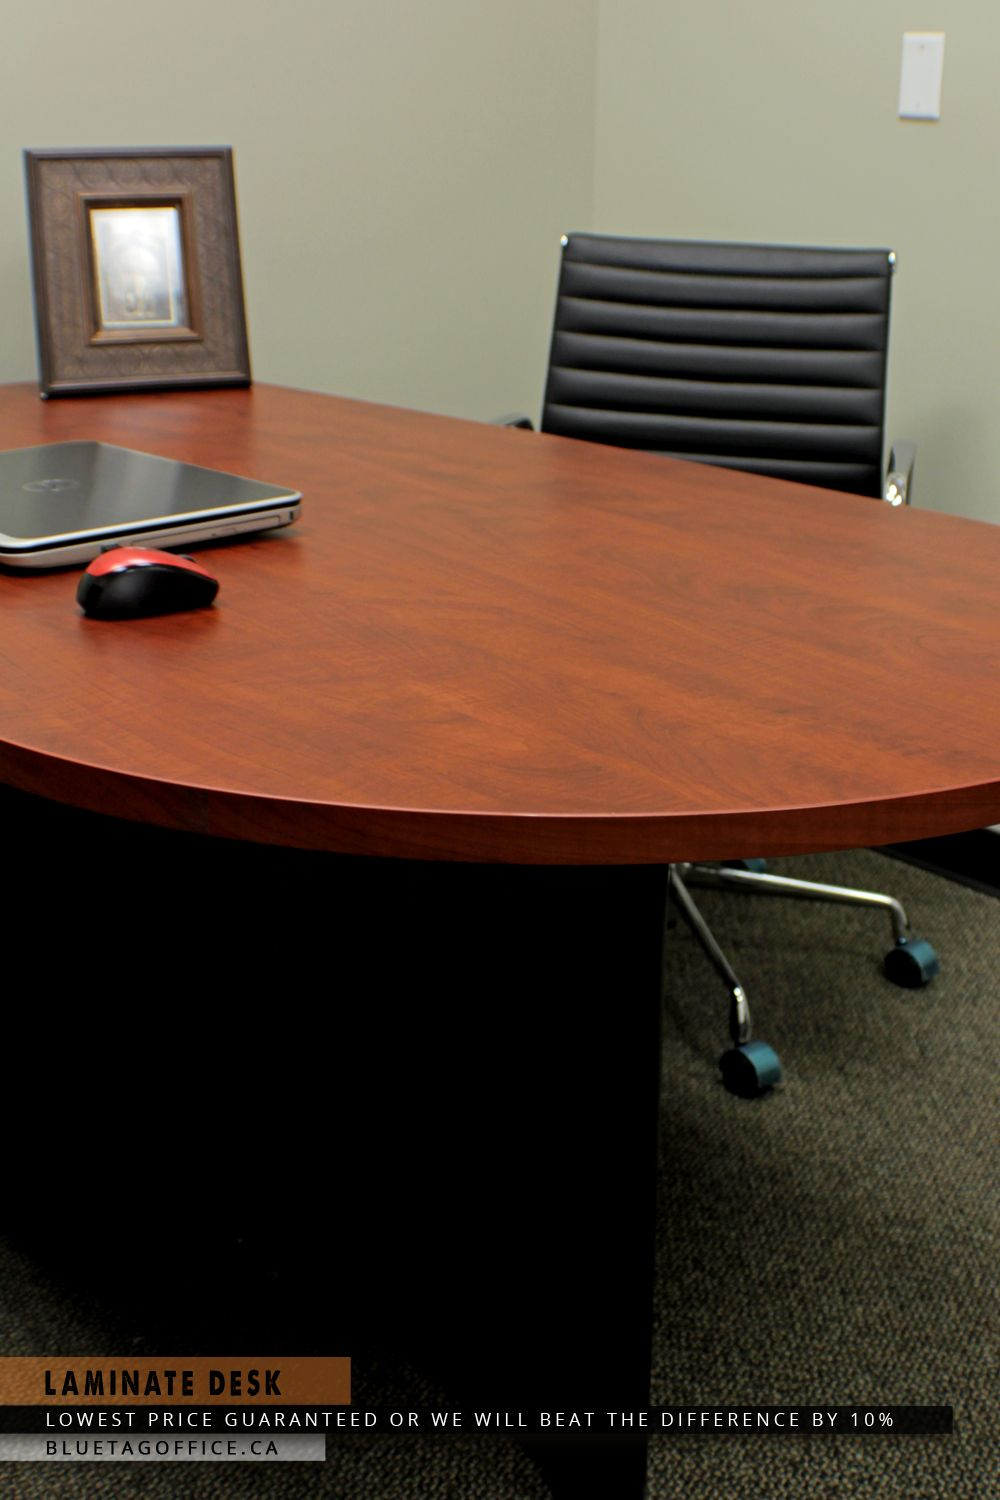 sturdy office desk for this high end office desk made from laminate wood is sleek and sturdy in design to